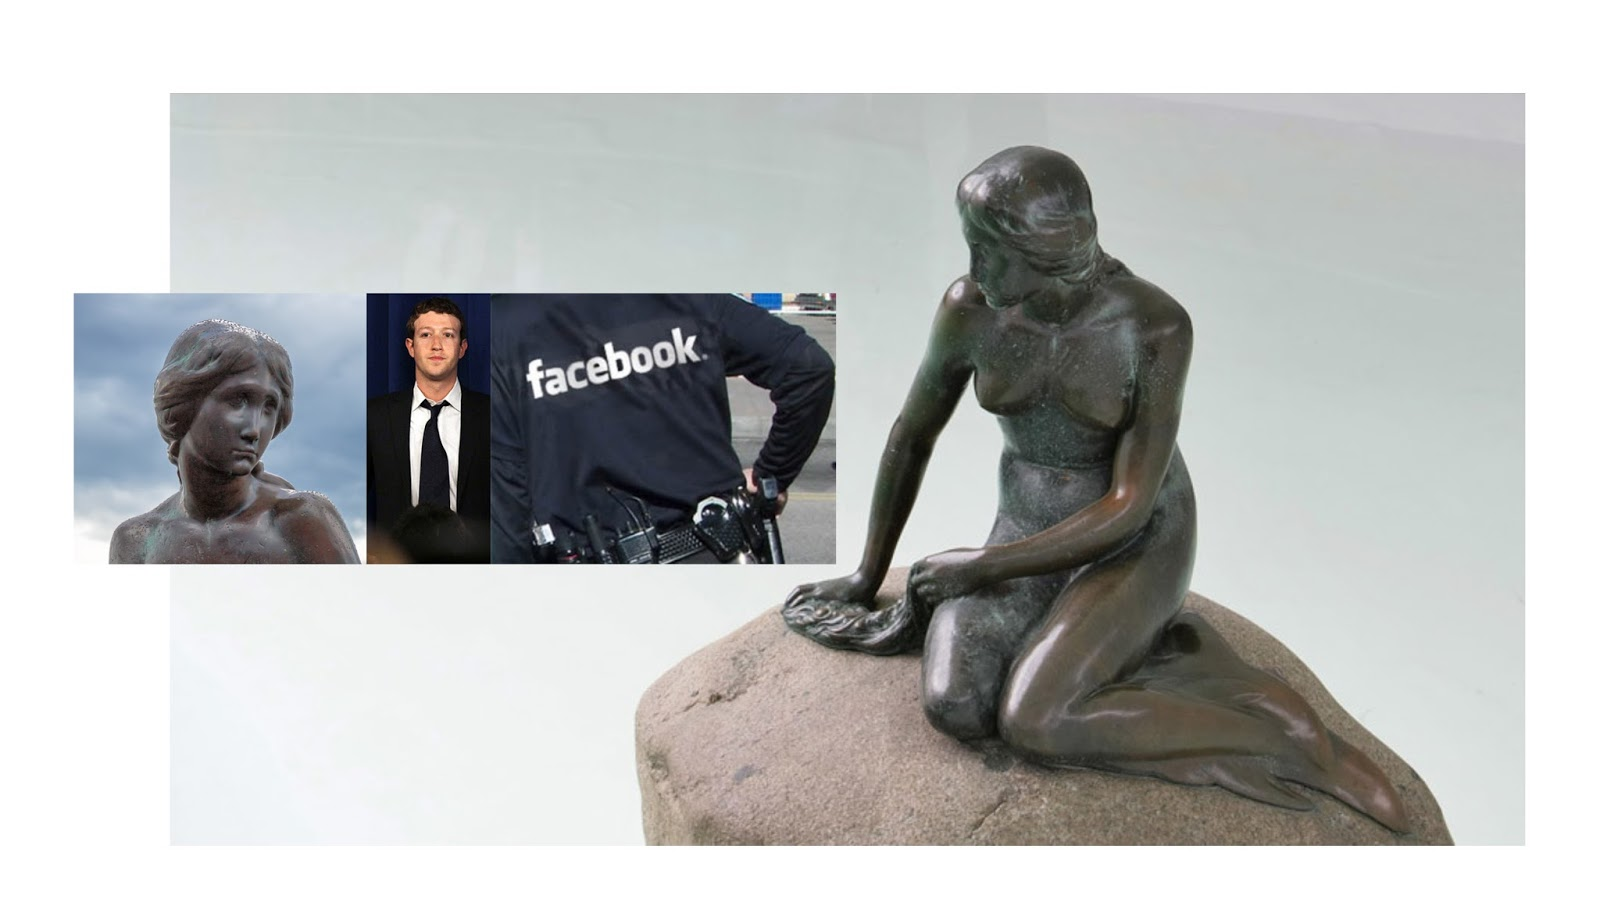 https://www.rt.com/news/327896-facebook-censor-denmark-mermaid/